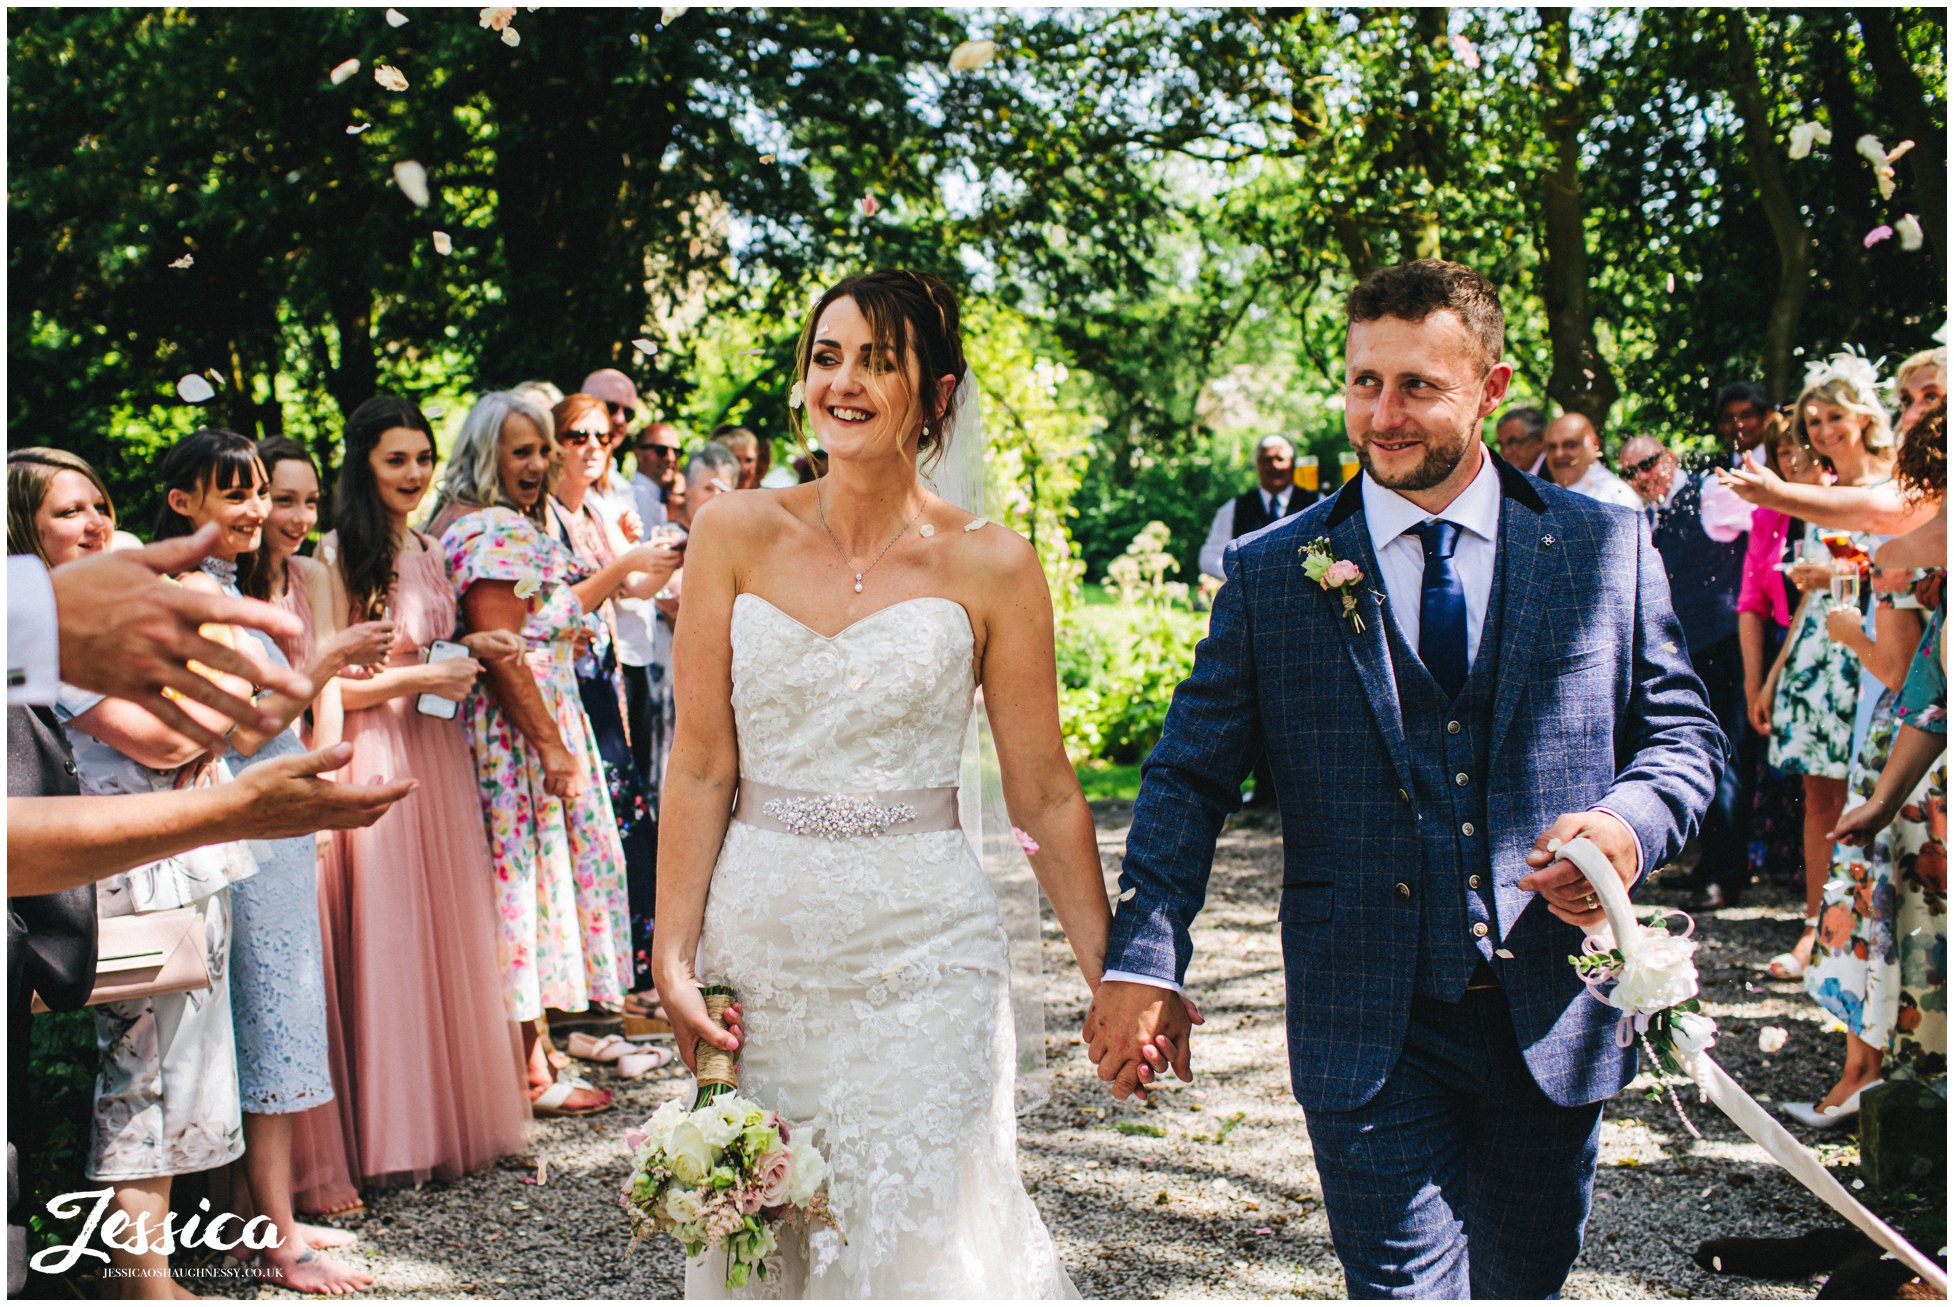 the couple are showered in confetti at eyam hall in derbyshire